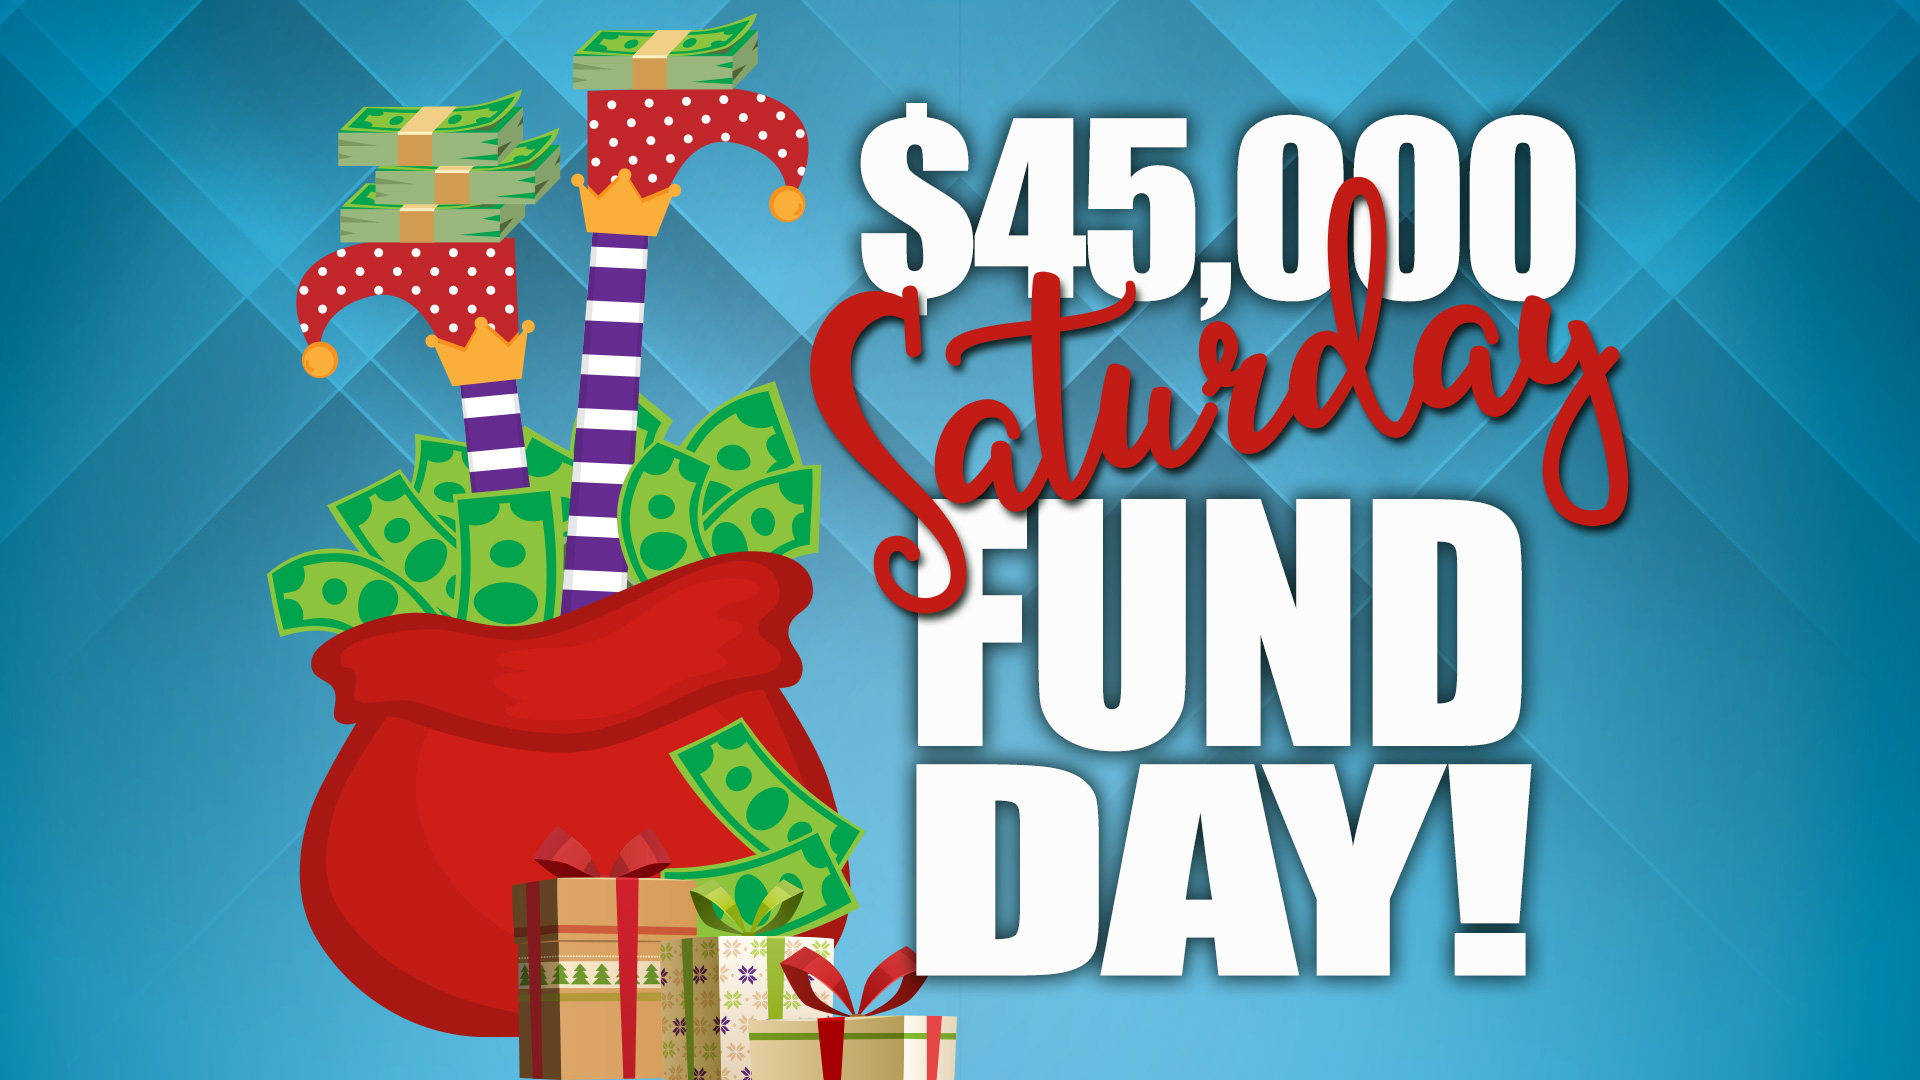 $45,000 Saturday Fund Day